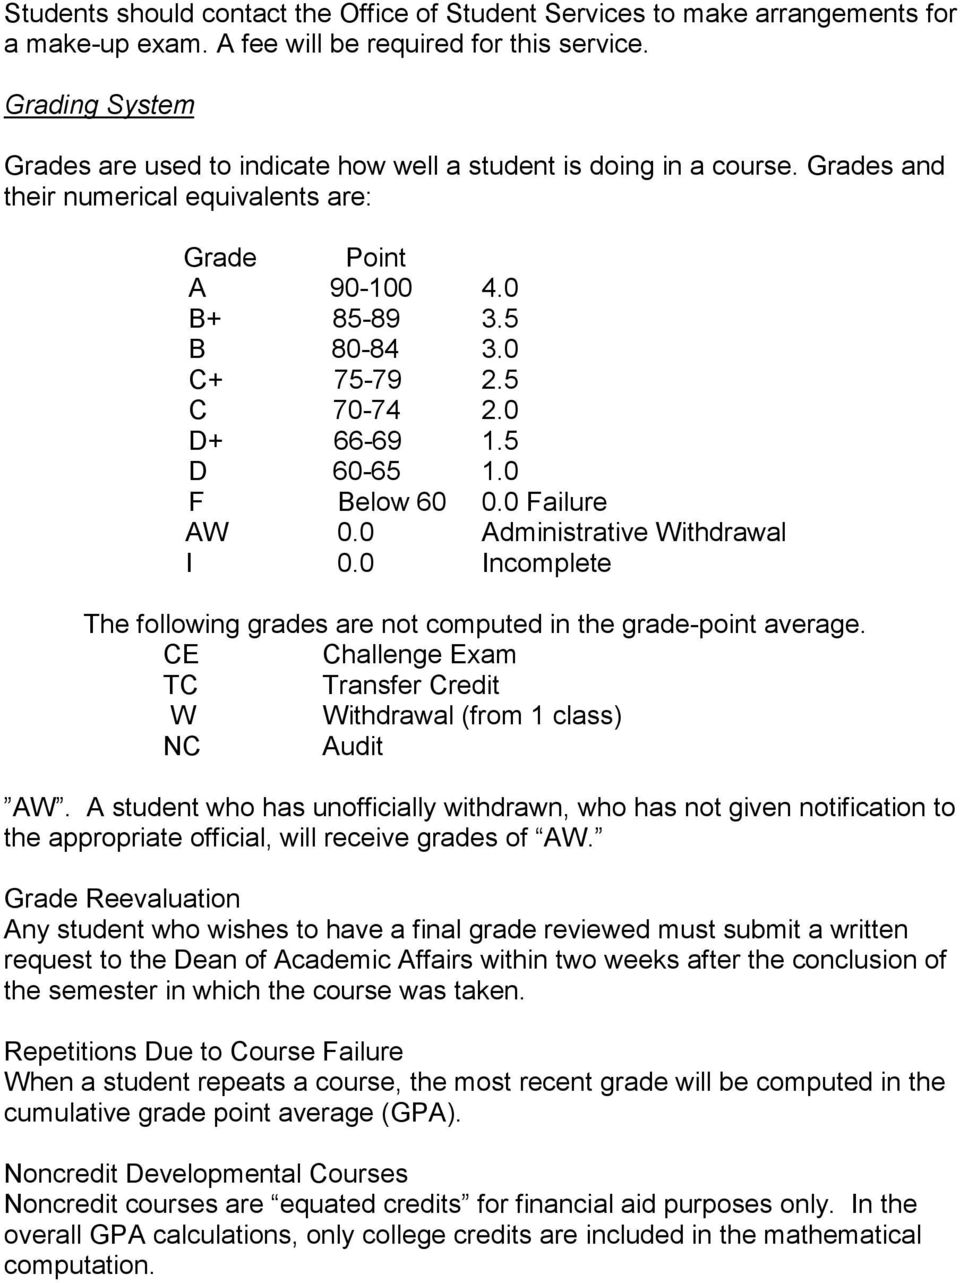 5 C 70-74 2.0 D+ 66-69 1.5 D 60-65 1.0 F Below 60 0.0 Failure AW 0.0 Administrative Withdrawal I 0.0 Incomplete The following grades are not computed in the grade-point average.